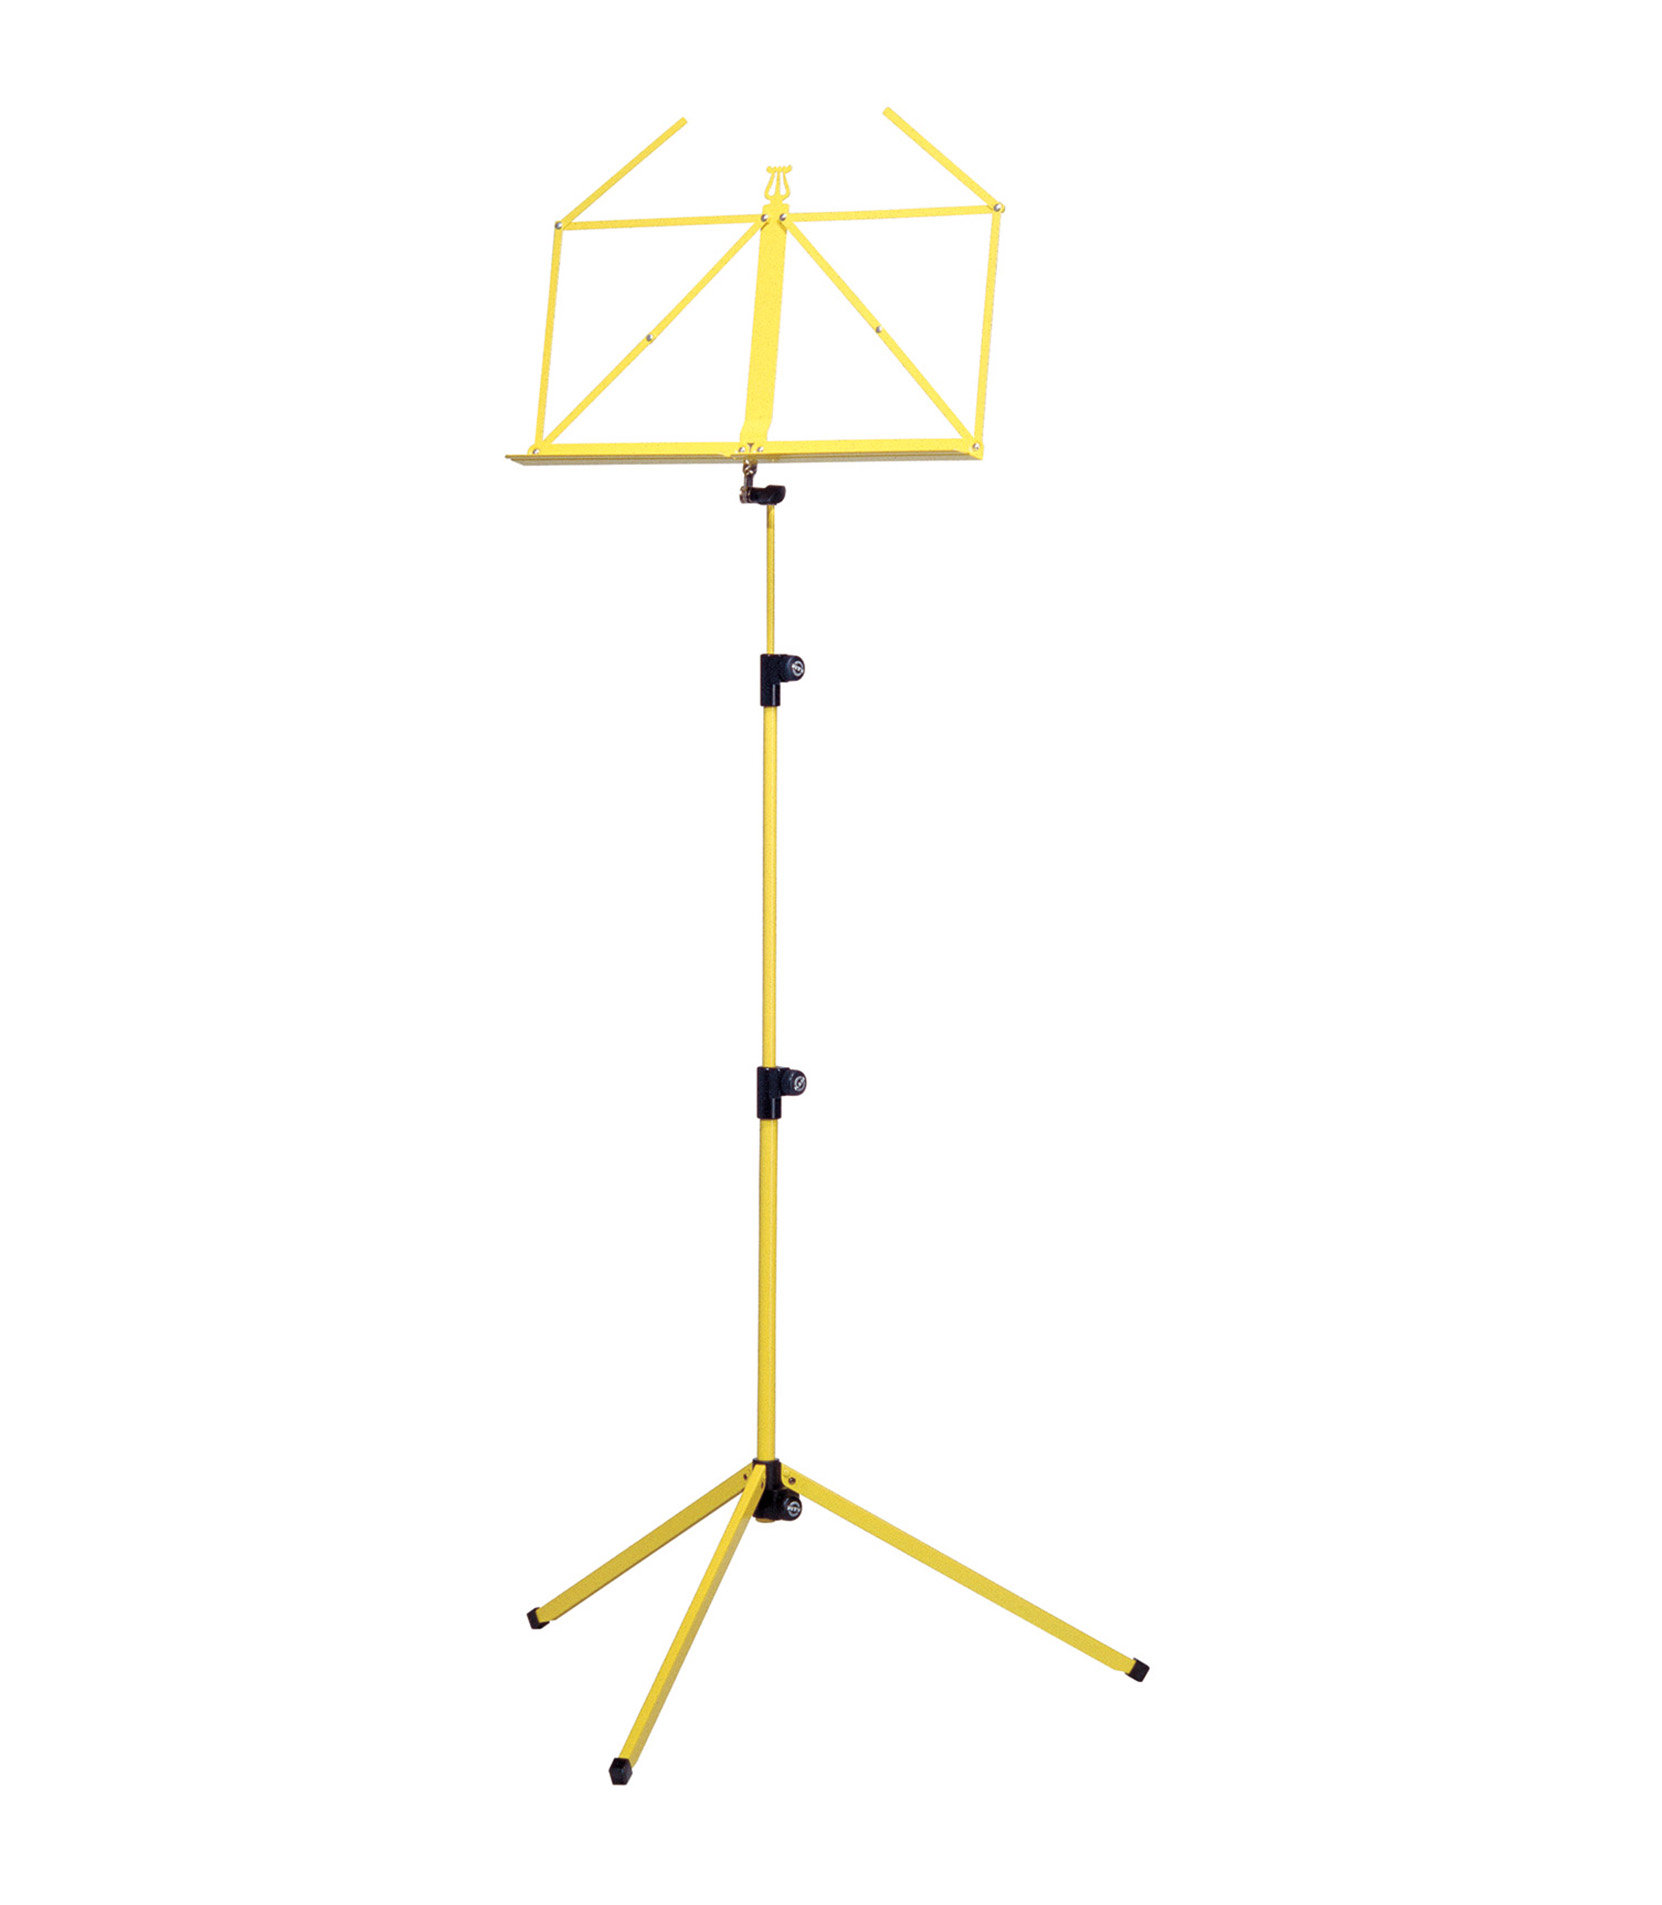 10010 000 61 Music stand Yellow color